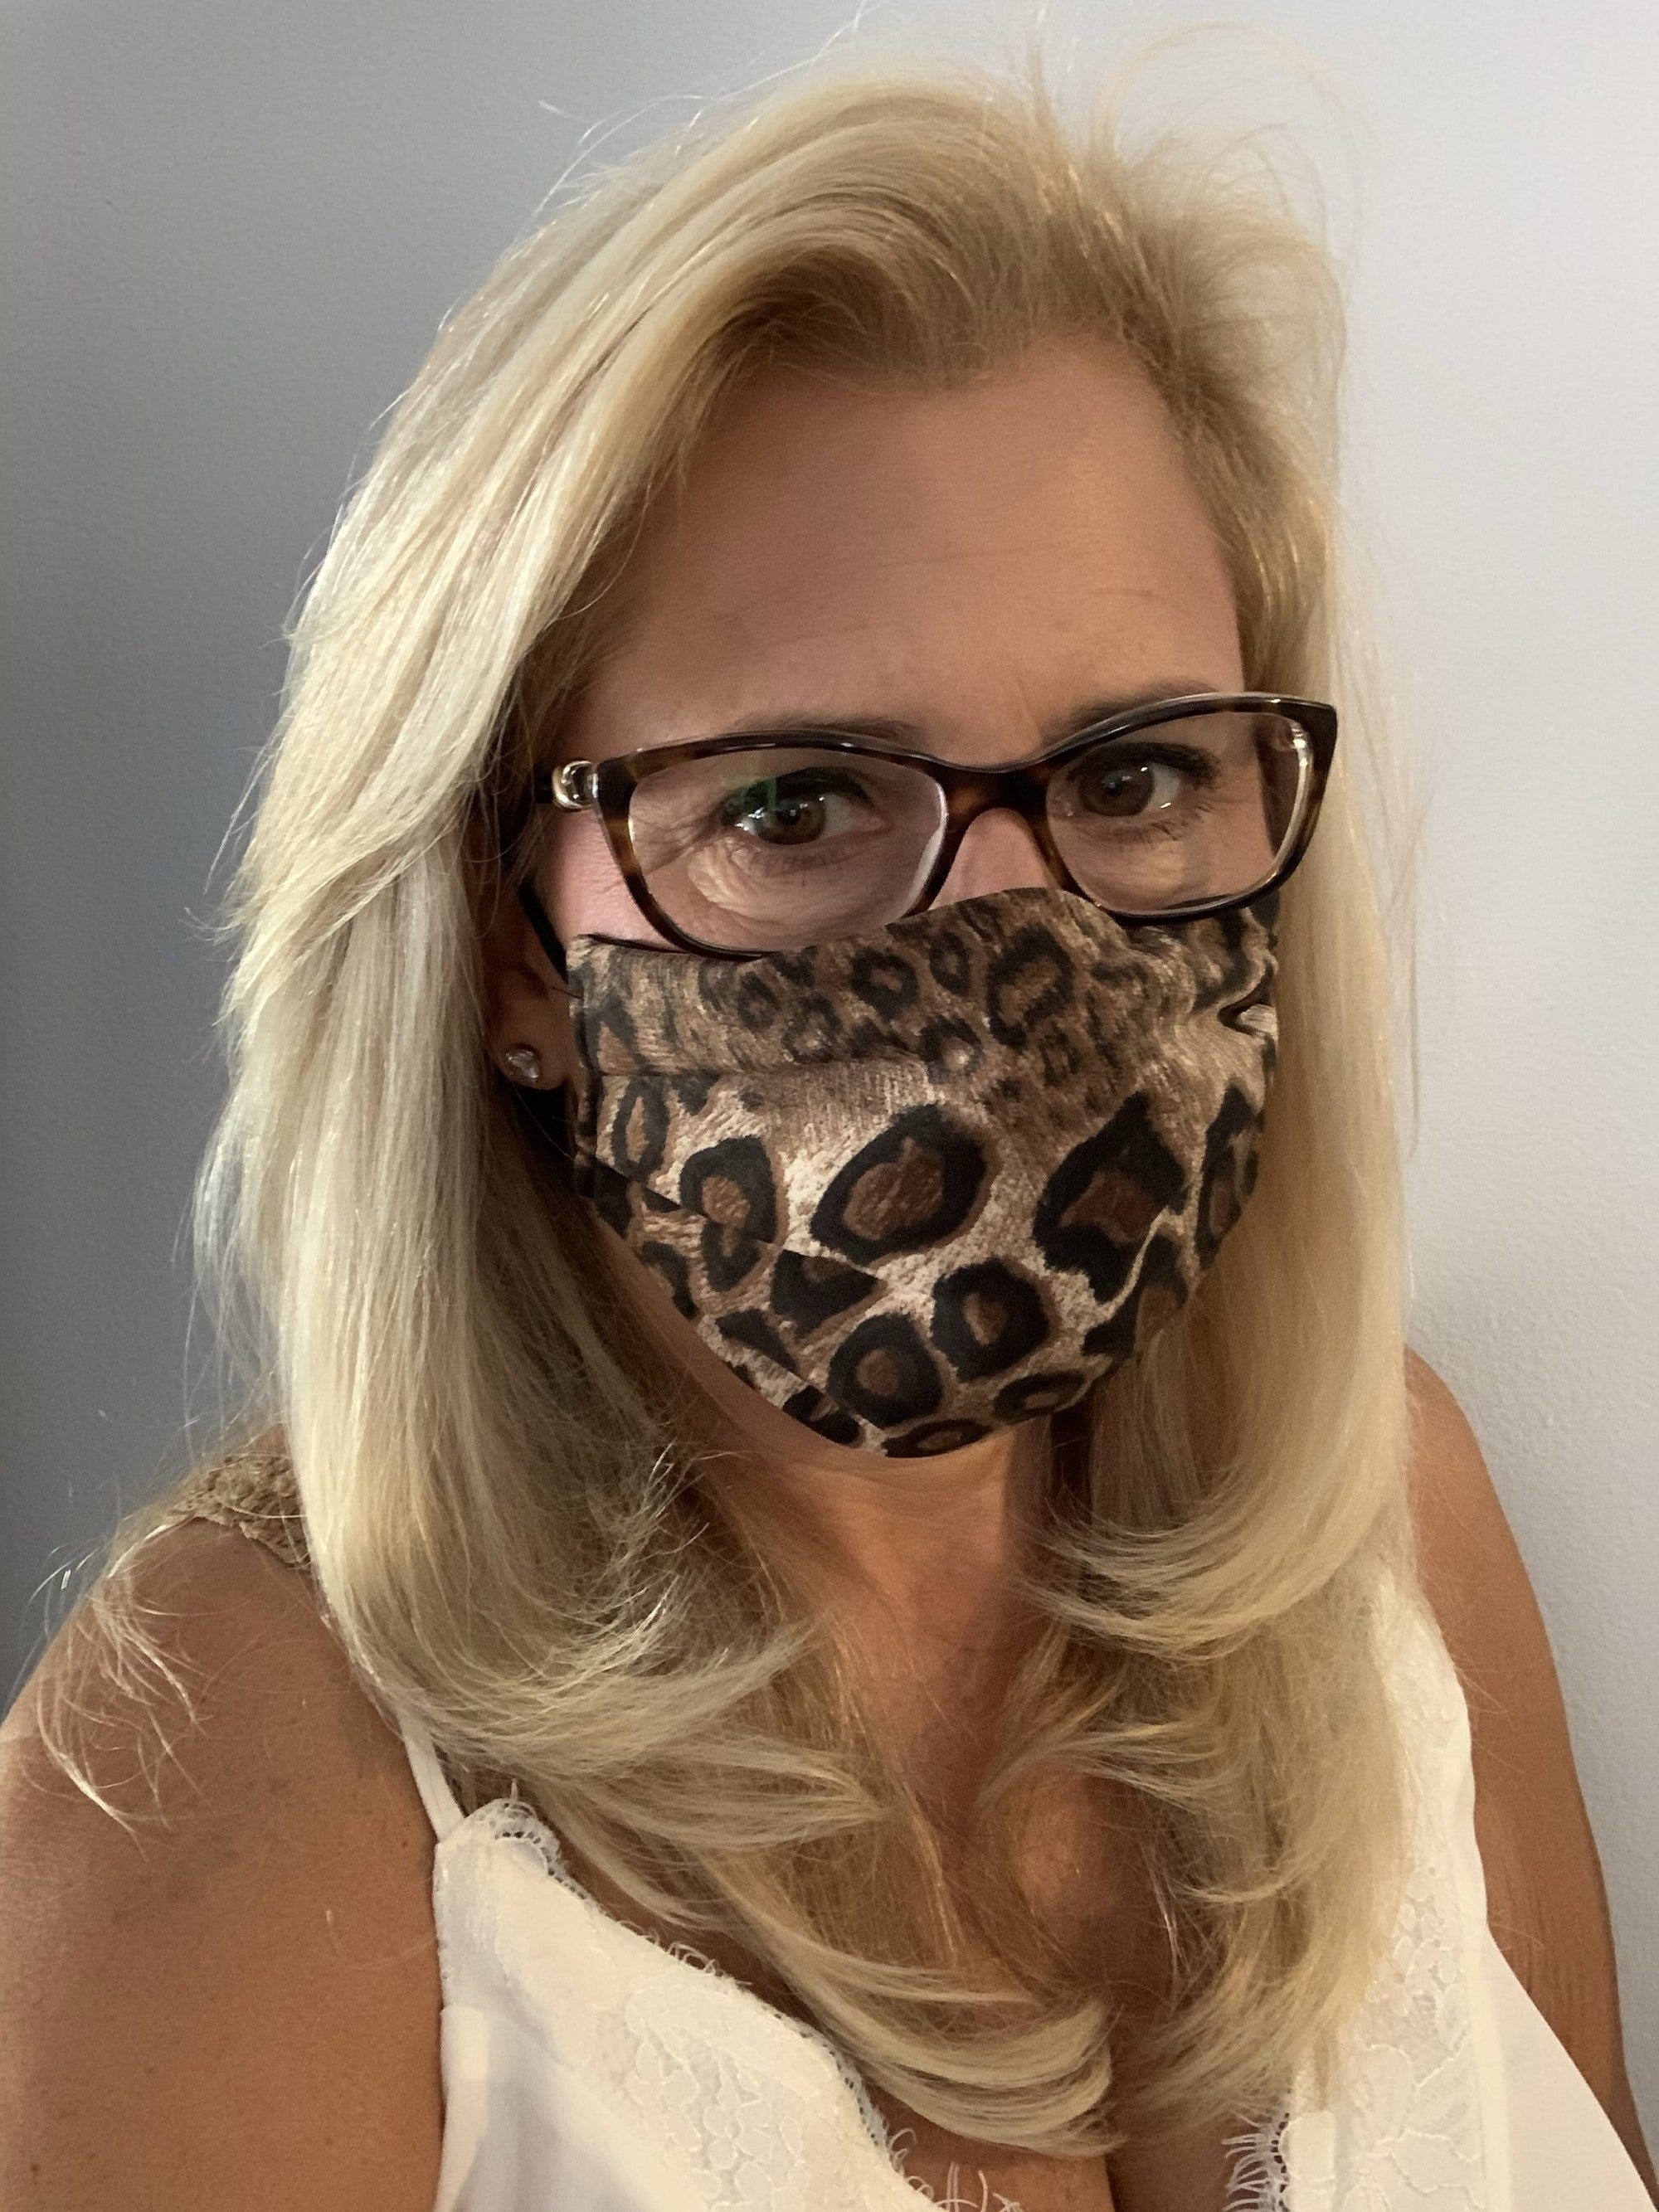 Stacy Bradley Design Face Mask Brown Leopard equestrian team apparel online tack store mobile tack store custom farm apparel custom show stable clothing equestrian lifestyle horse show clothing riding clothes horses equestrian tack store